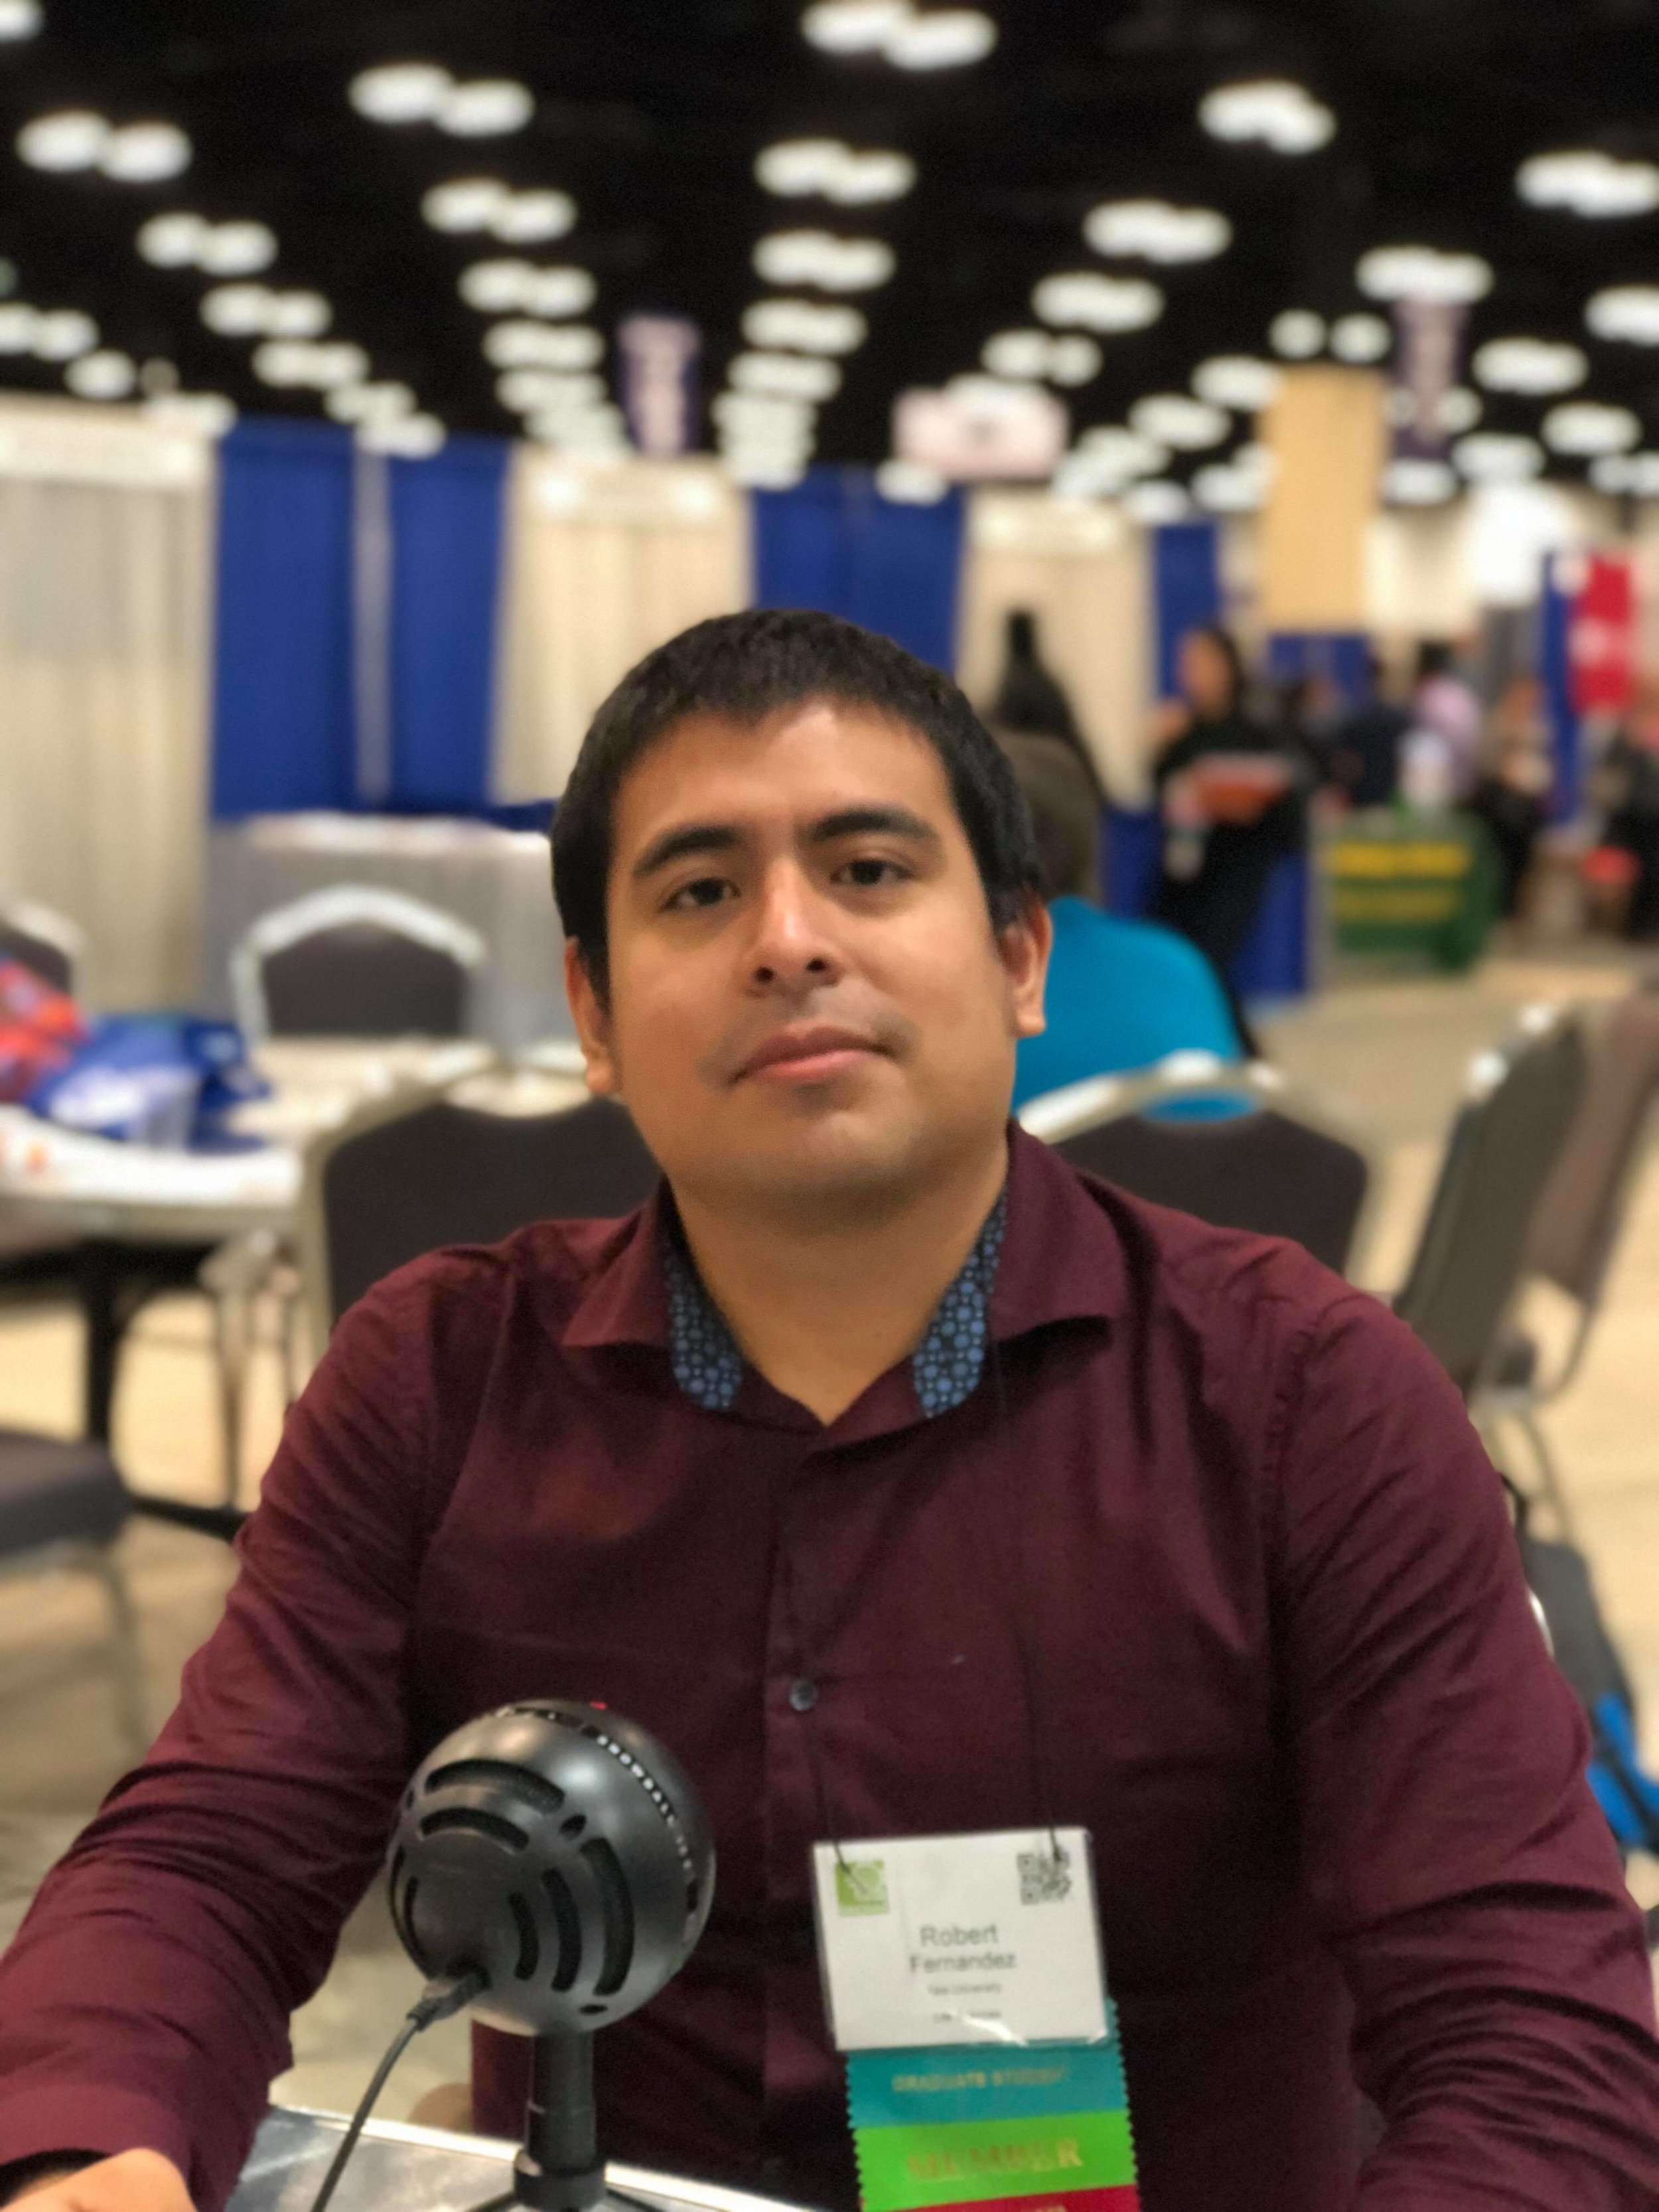 Robert W. Fernandez , Ph.D. Candidate in Molecular Biophysics & Biochemistry at Yale University and Founder of Científico Latino